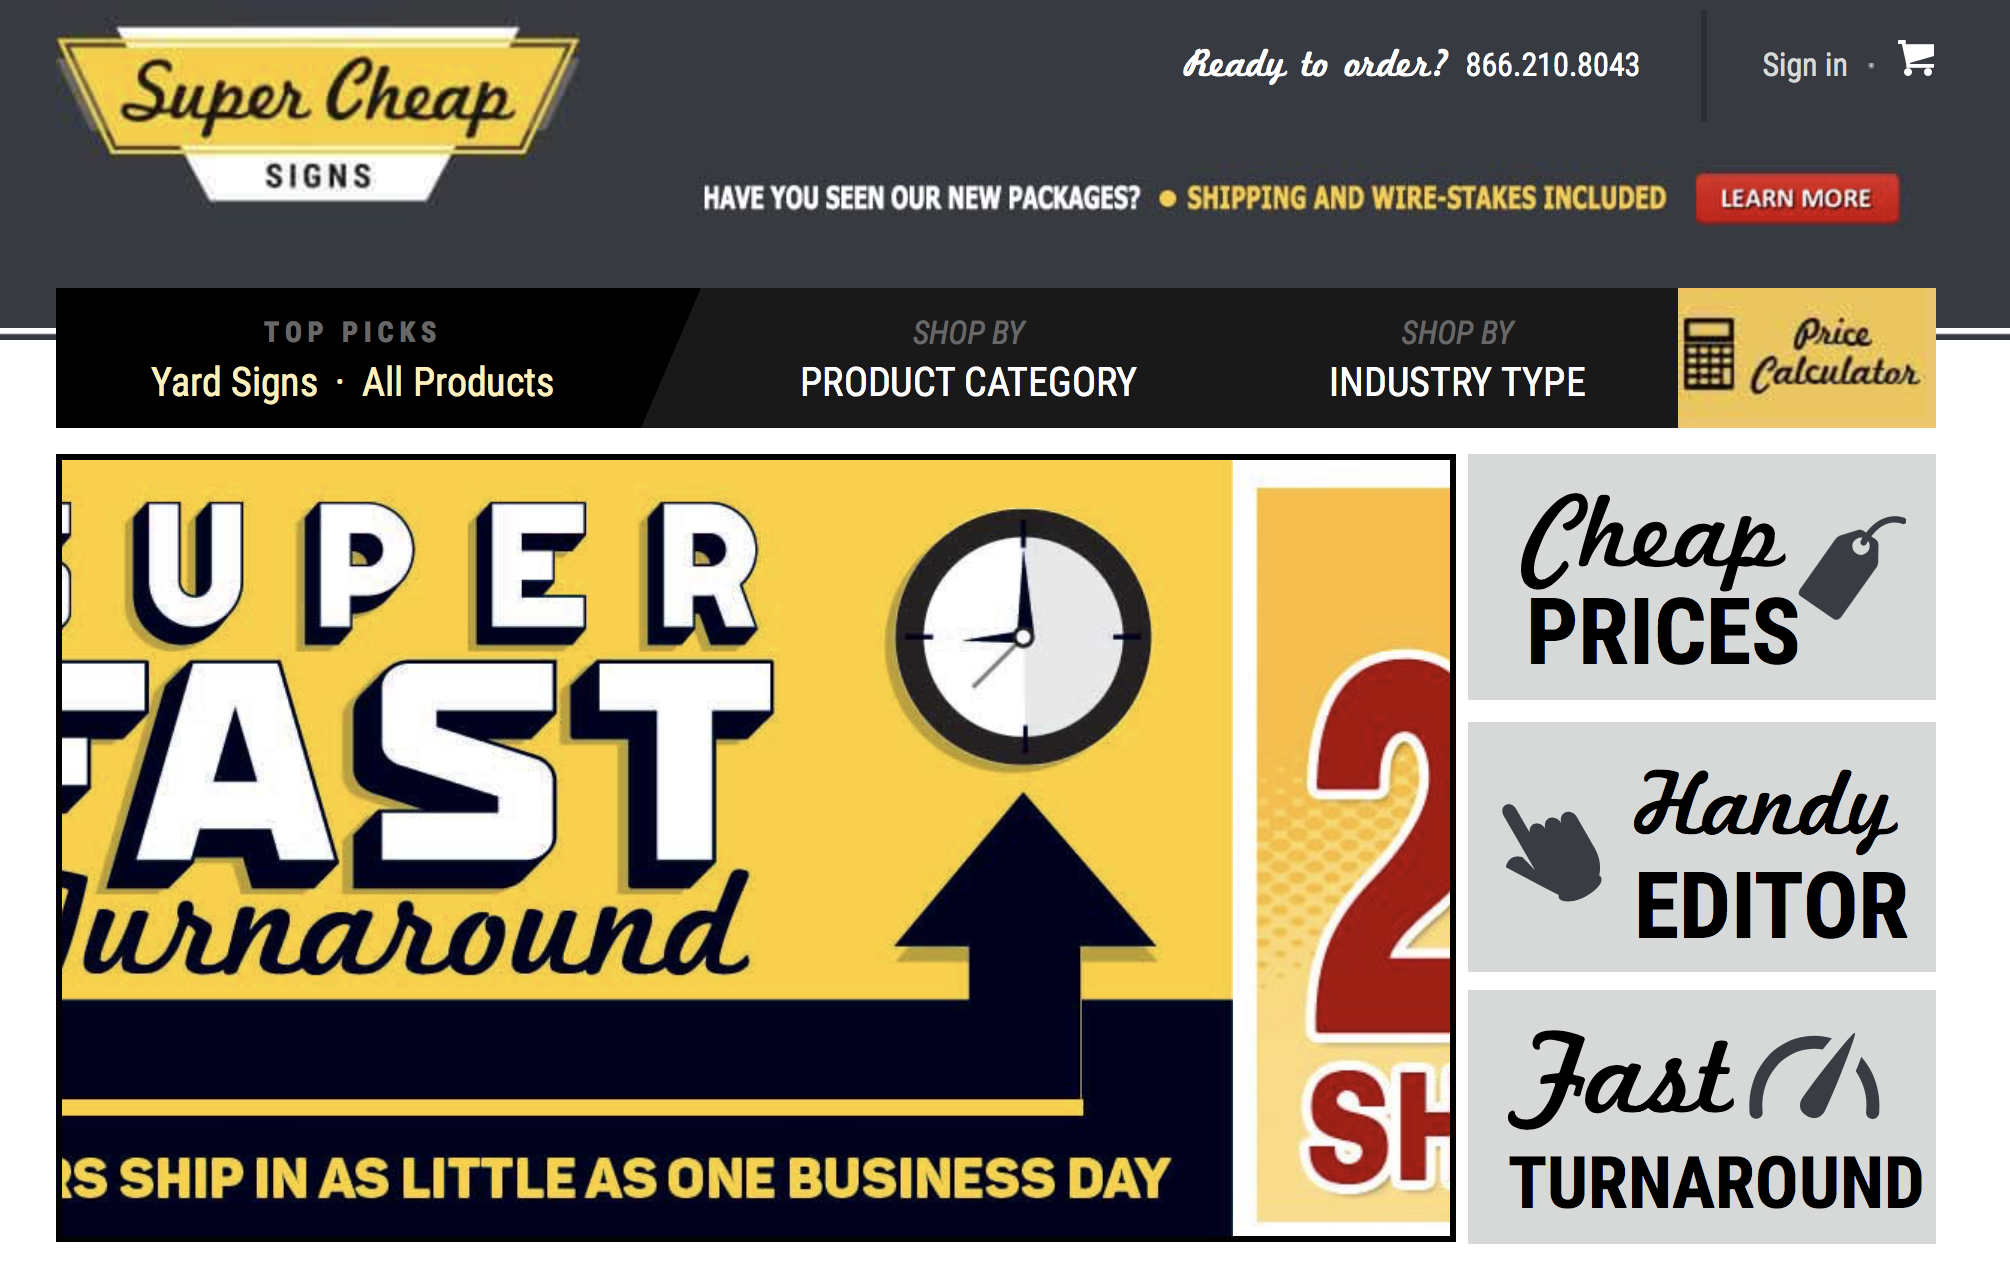 Super Cheap Signs - Great pricing for general real estate signs